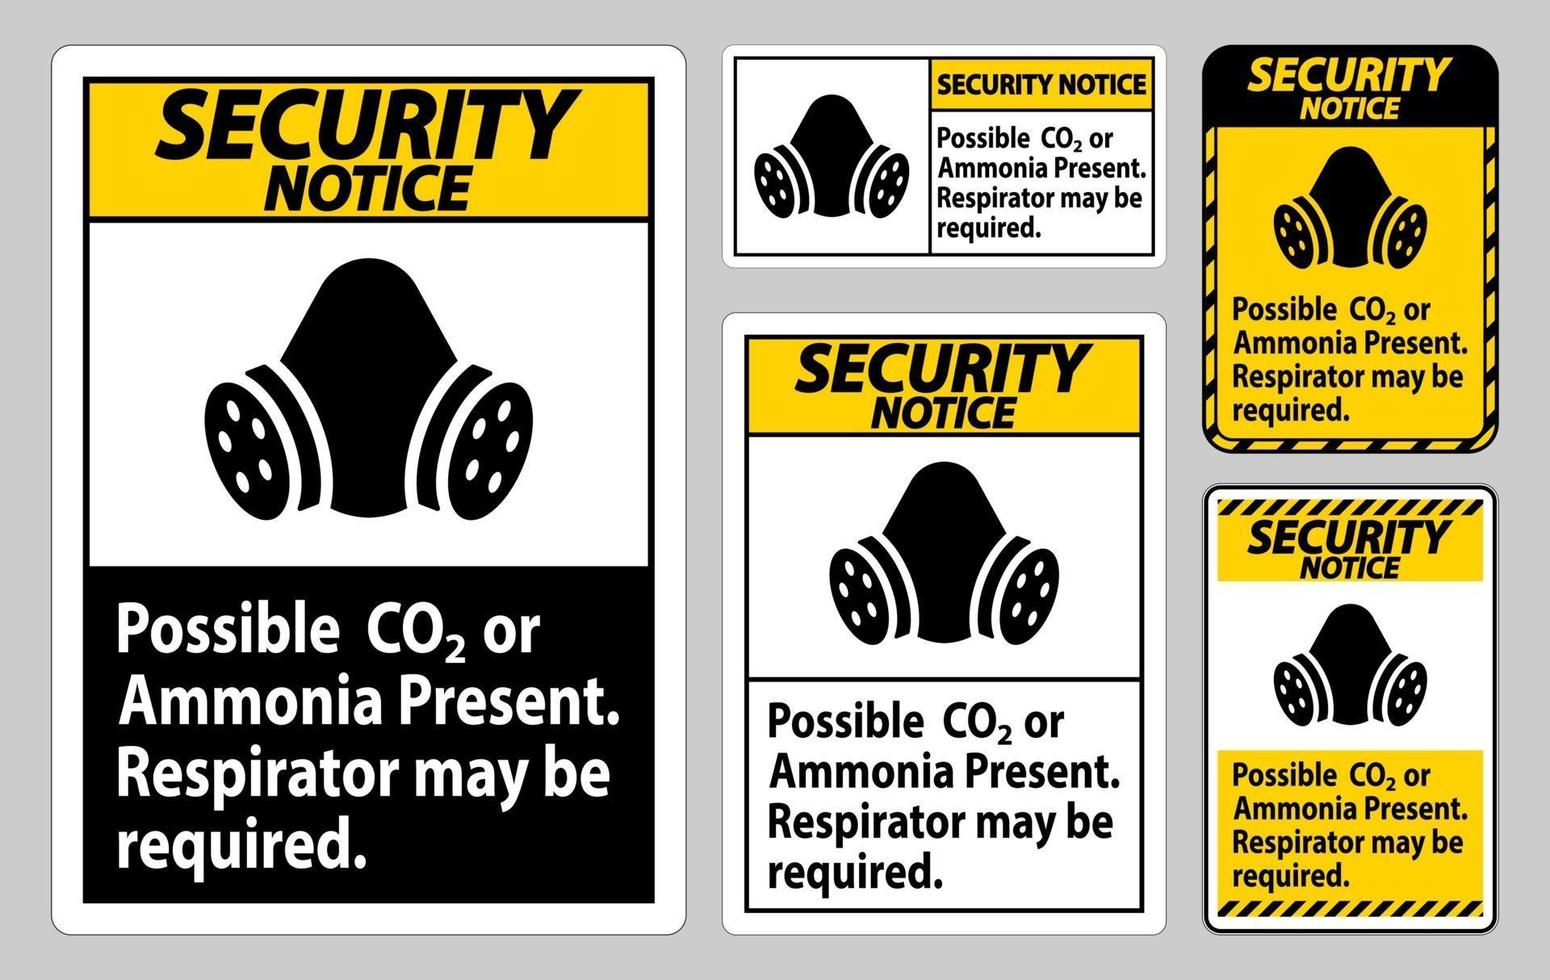 Security Notice PPE Sign Possible Co2 Or Ammonia Present, Respirator May Be Required vector